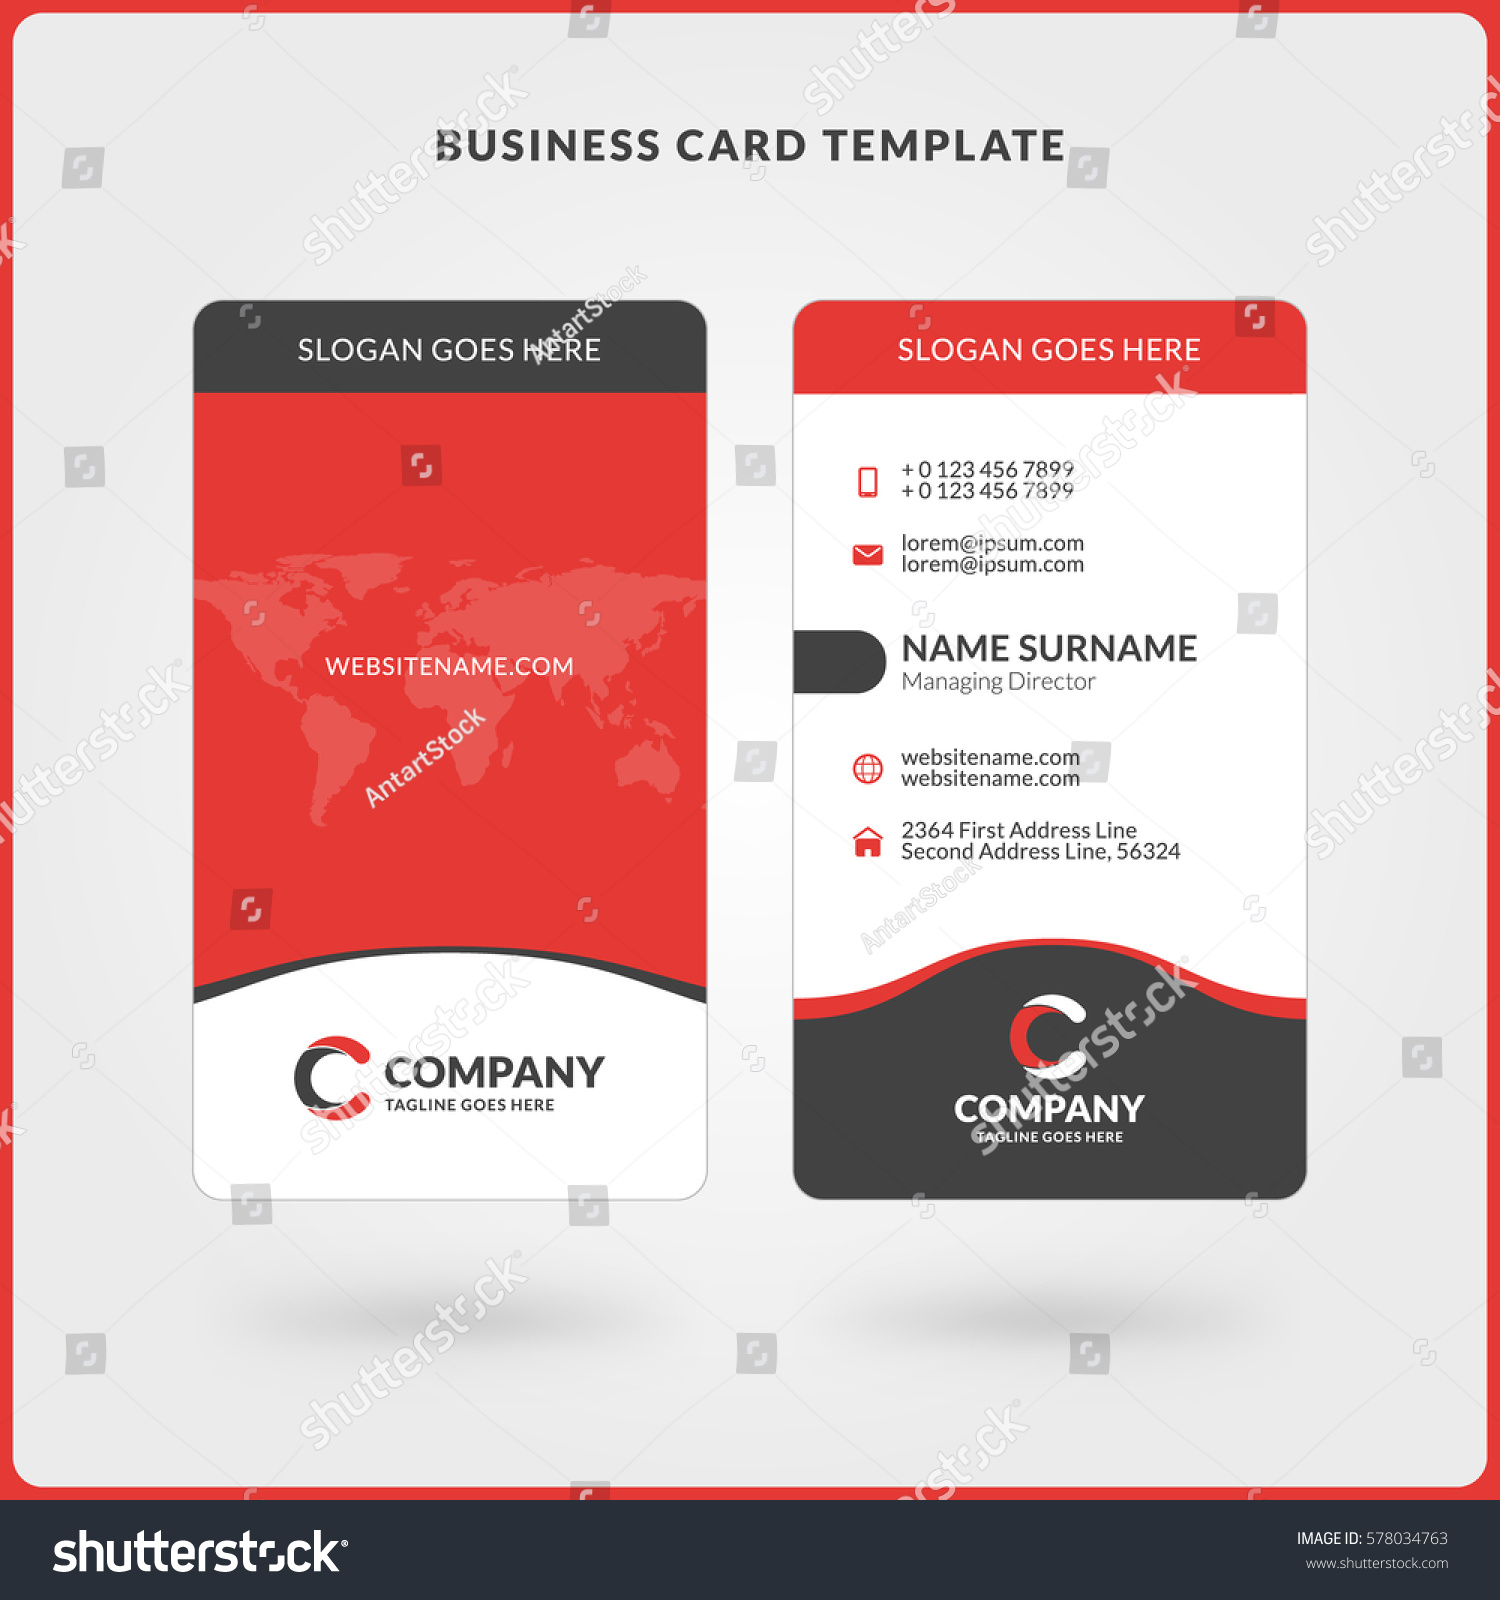 vertical doublesided business card template red stock vector 578034763 shutterstock. Black Bedroom Furniture Sets. Home Design Ideas